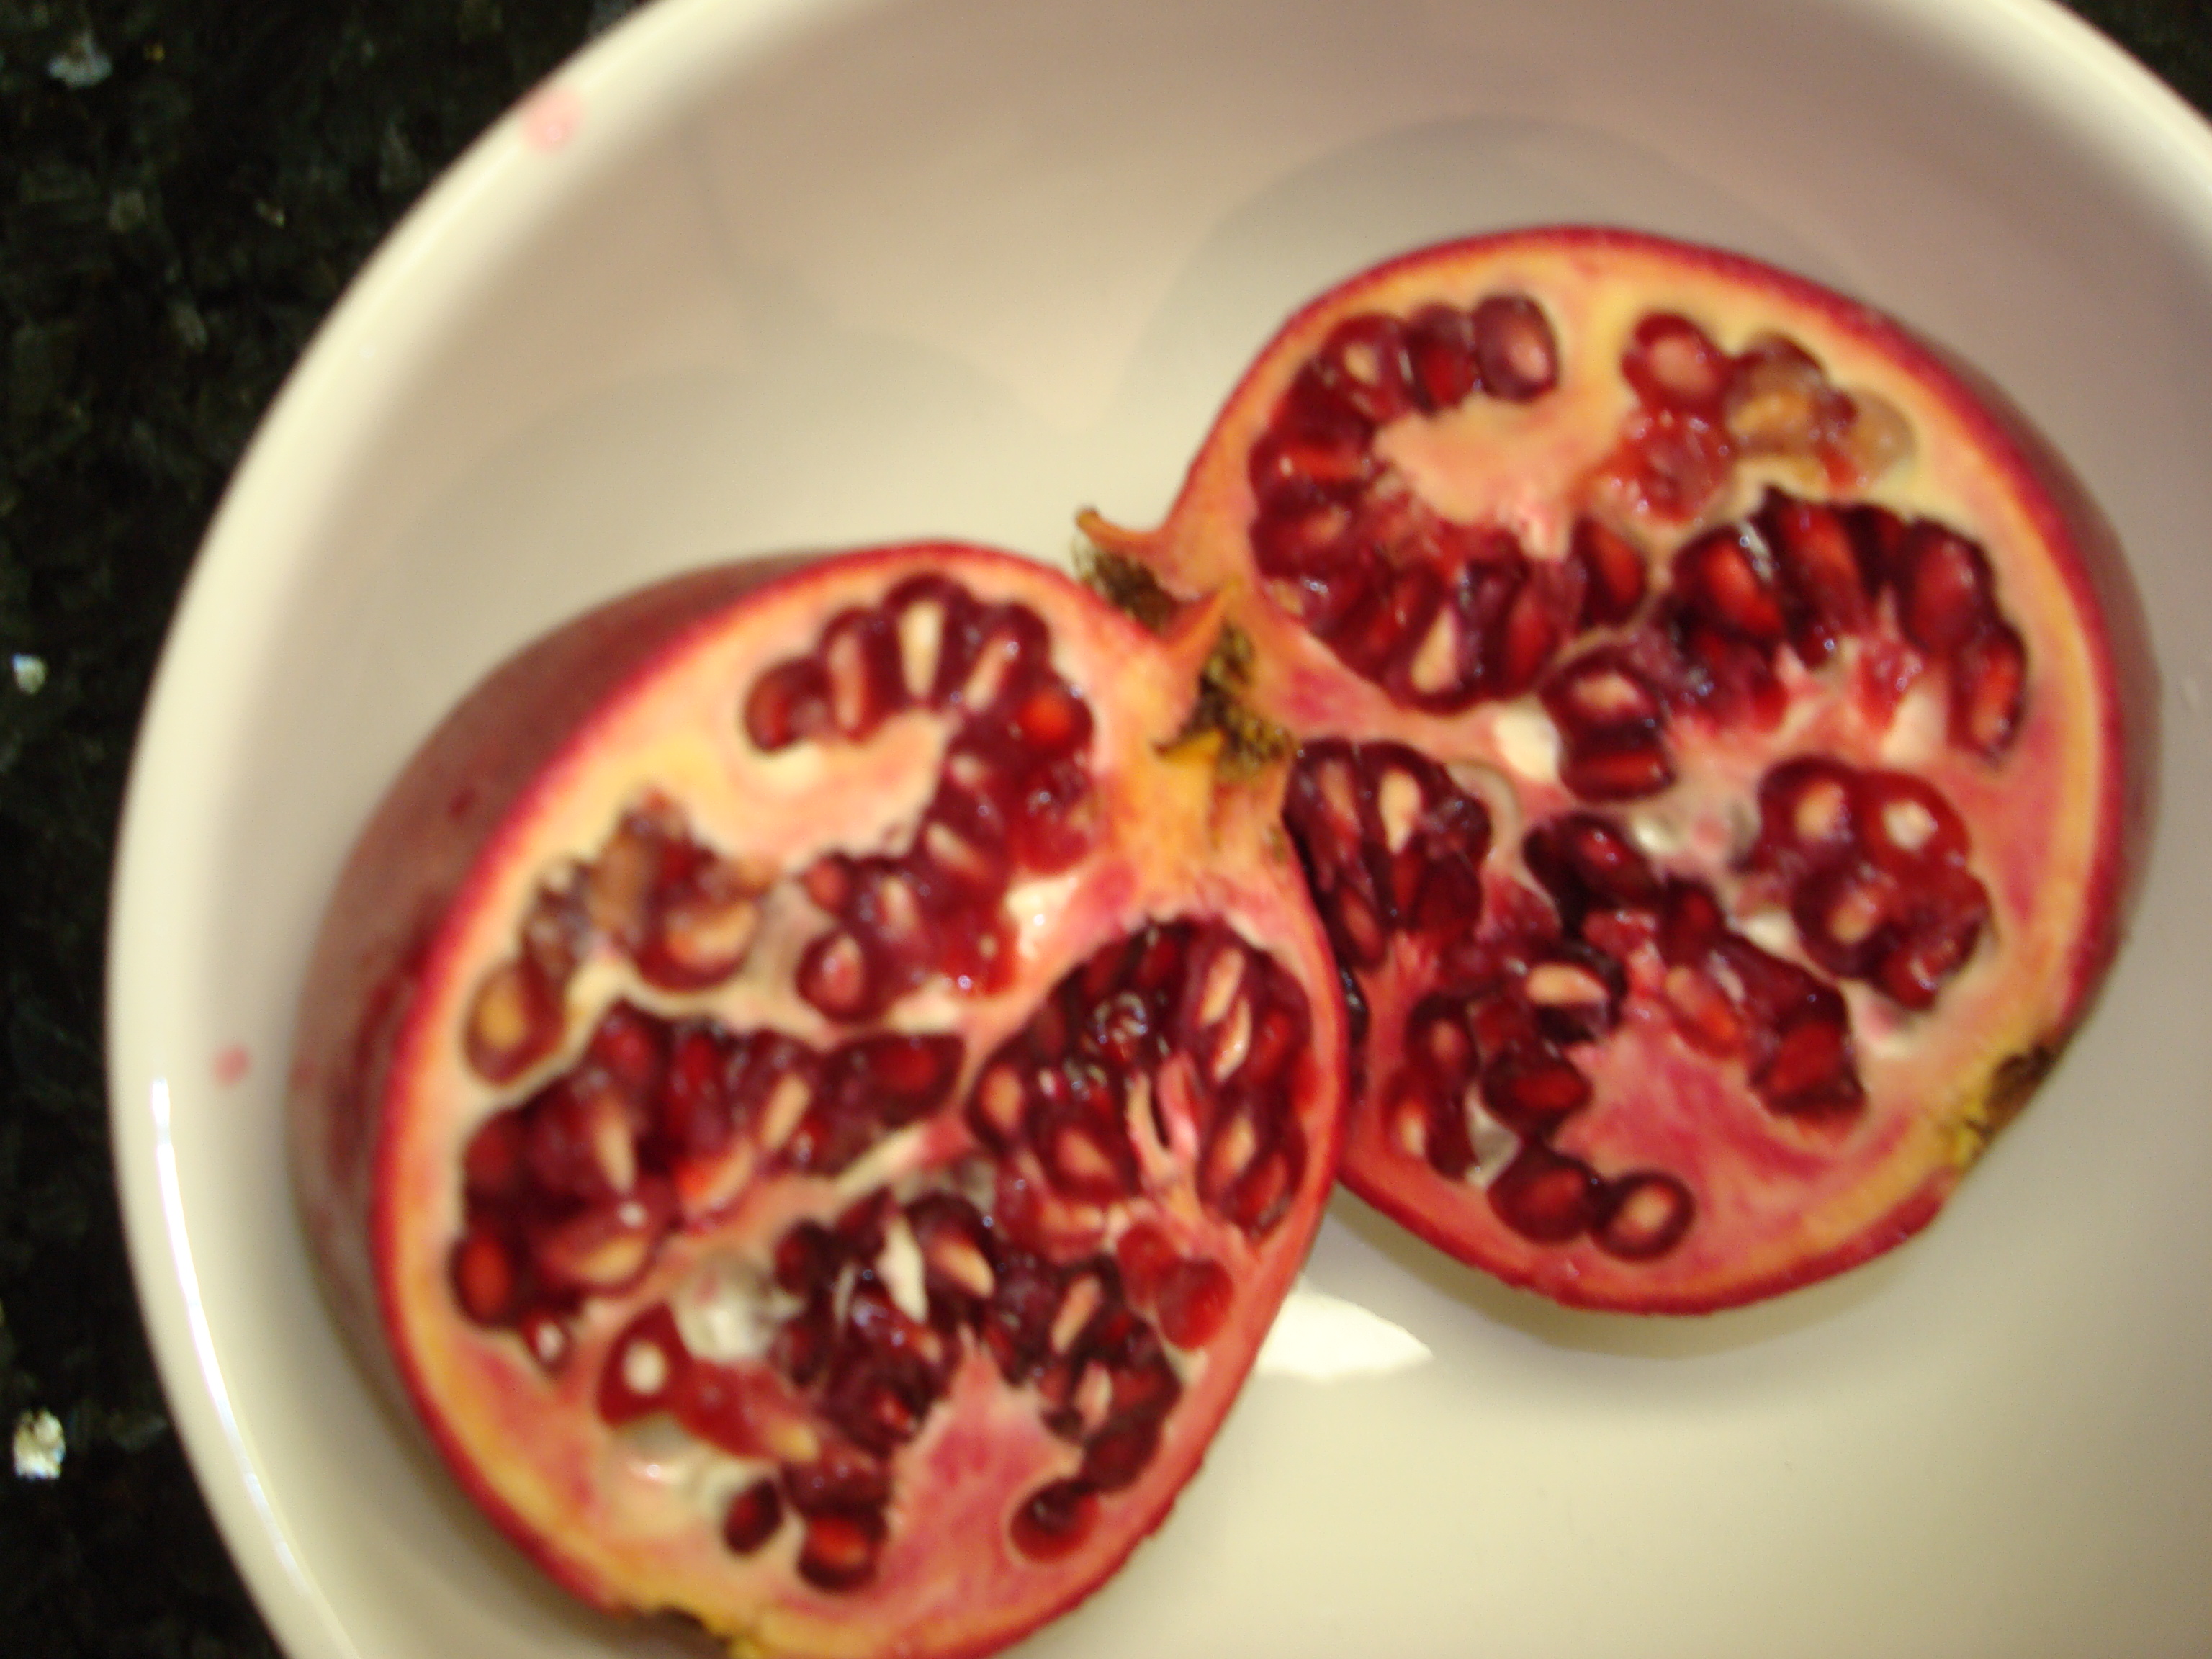 Pink Grapefruit, Pomegranate, &amp; Mche Salad with Lemon-Ume Vinaigrette